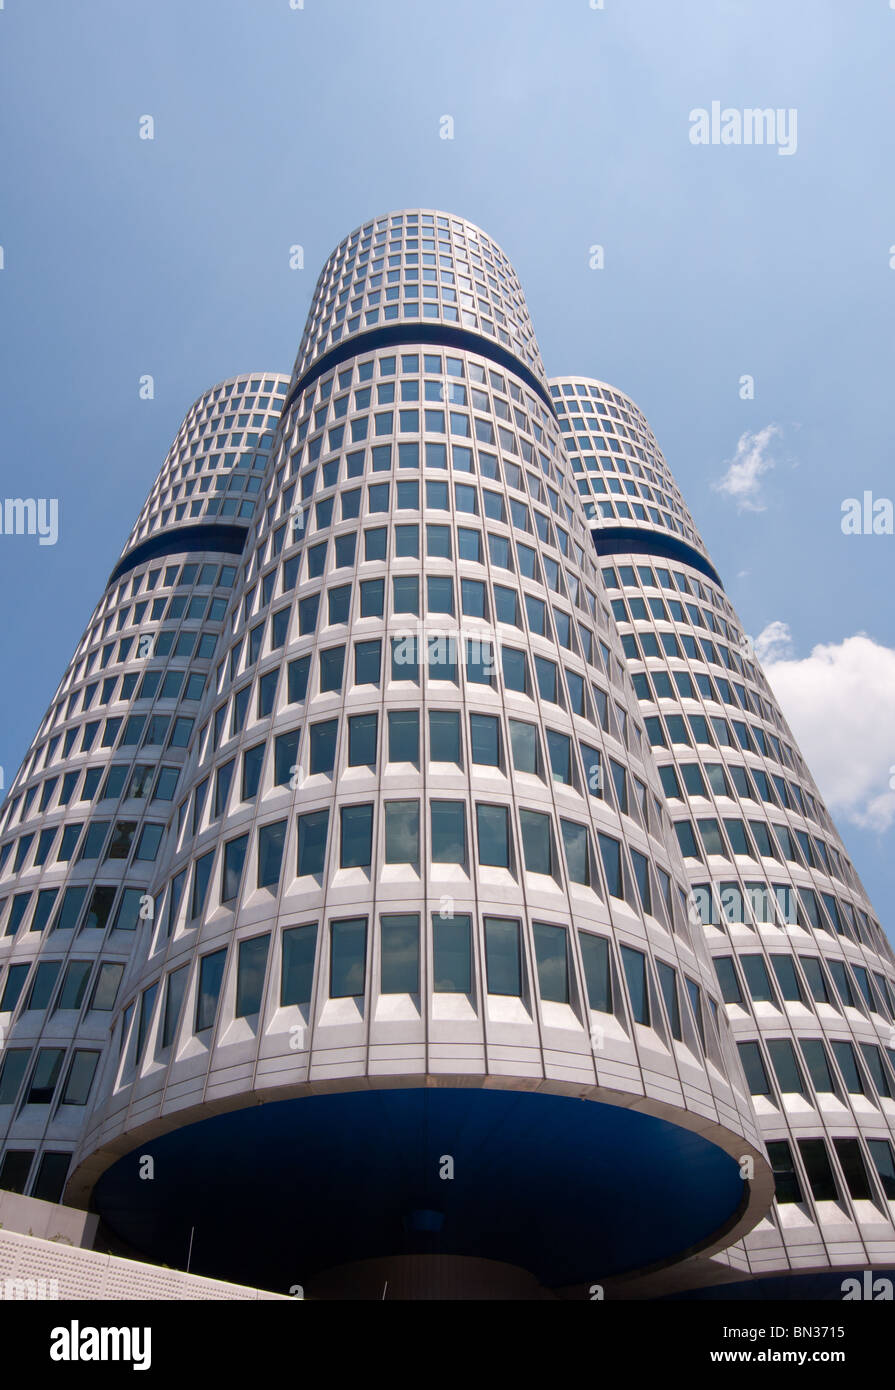 BMW's corporate headquarters in Munich, Germany - Stock Image